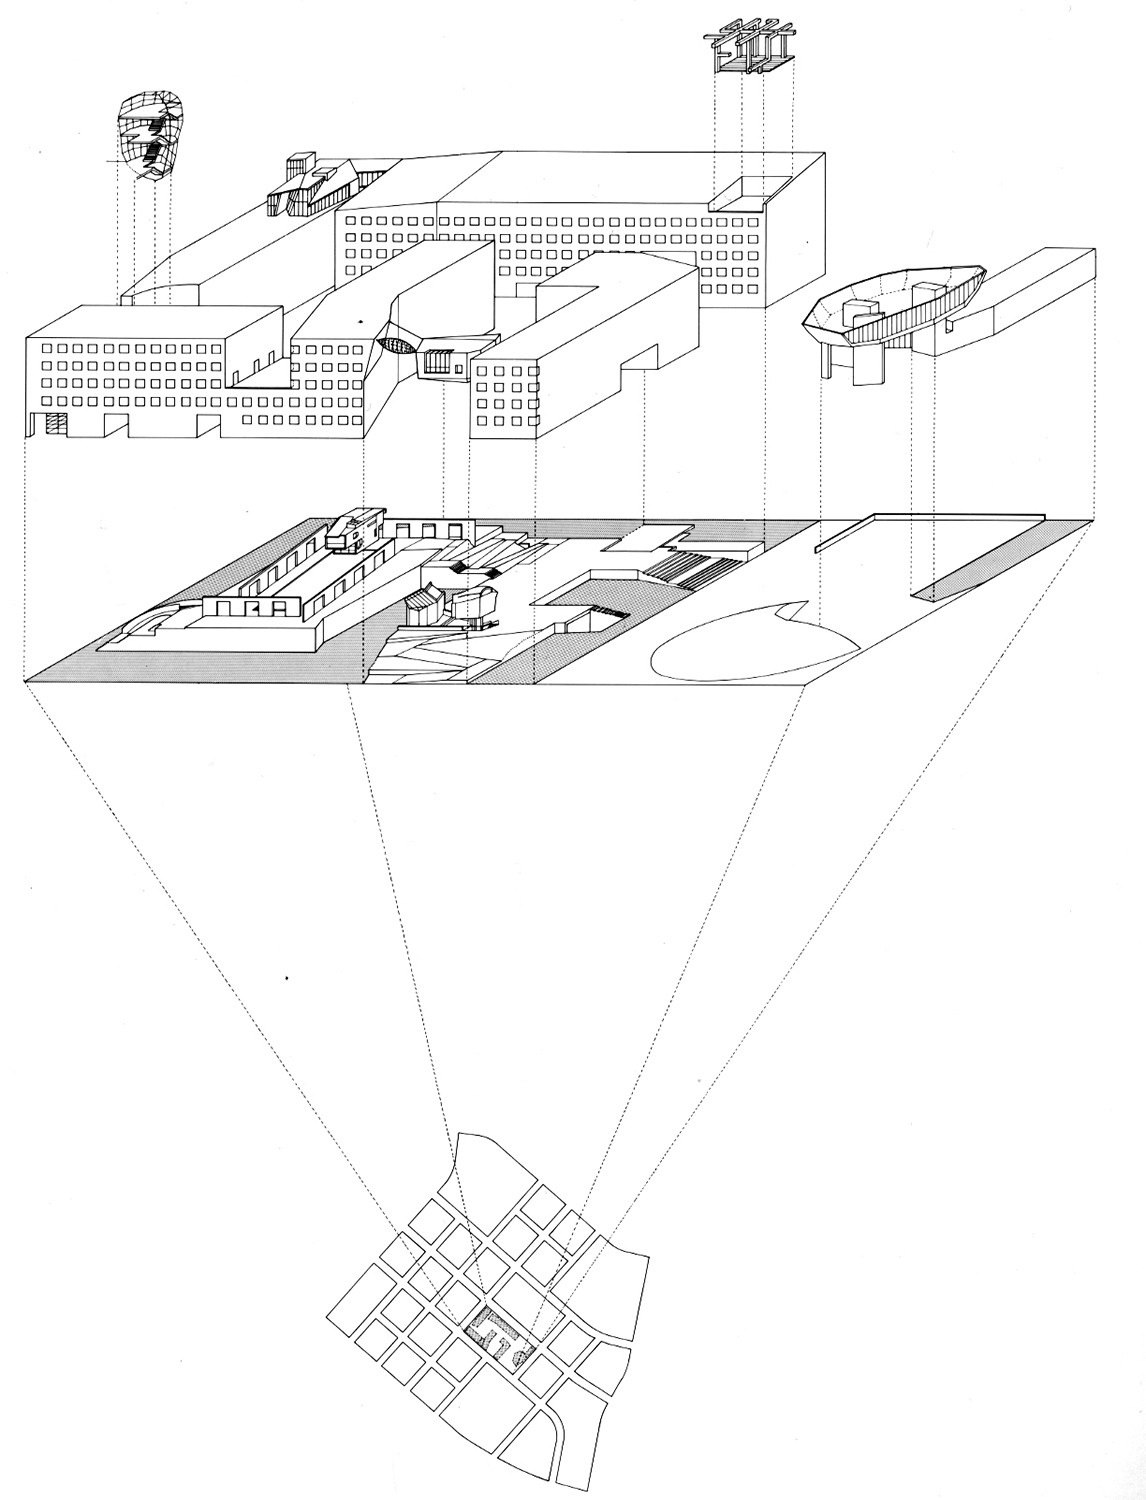 https://stevenholl.sfo2.digitaloceanspaces.com/uploads/projects/project-images/StevenHollArchitects_Makuhari_axo_WV.jpg